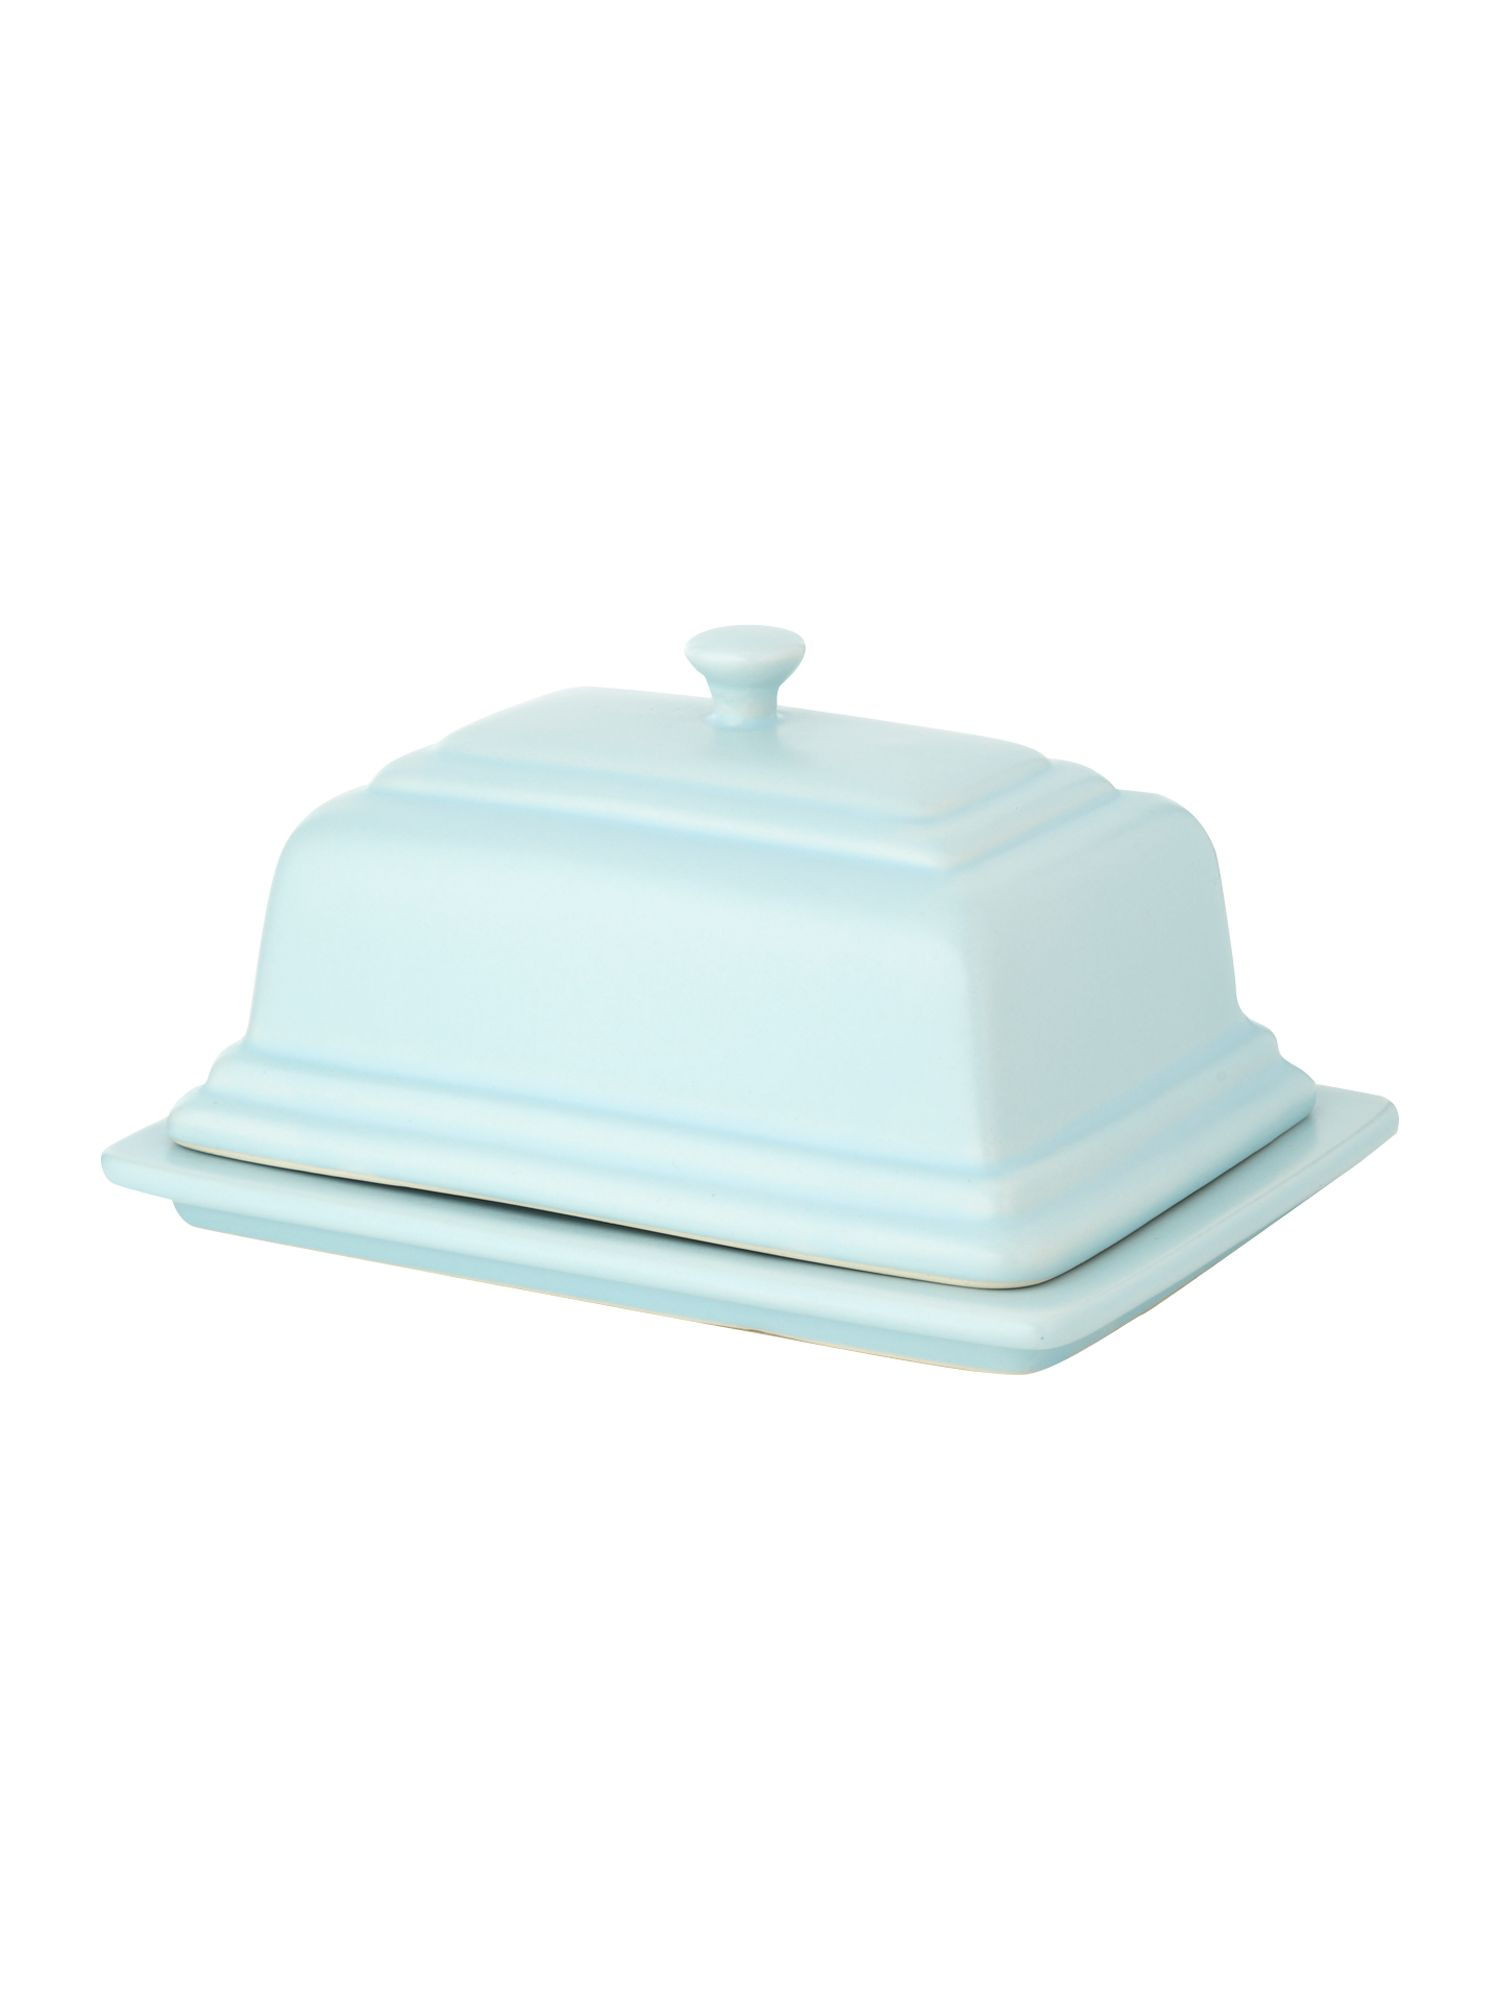 Maison butter dish, Pale blue